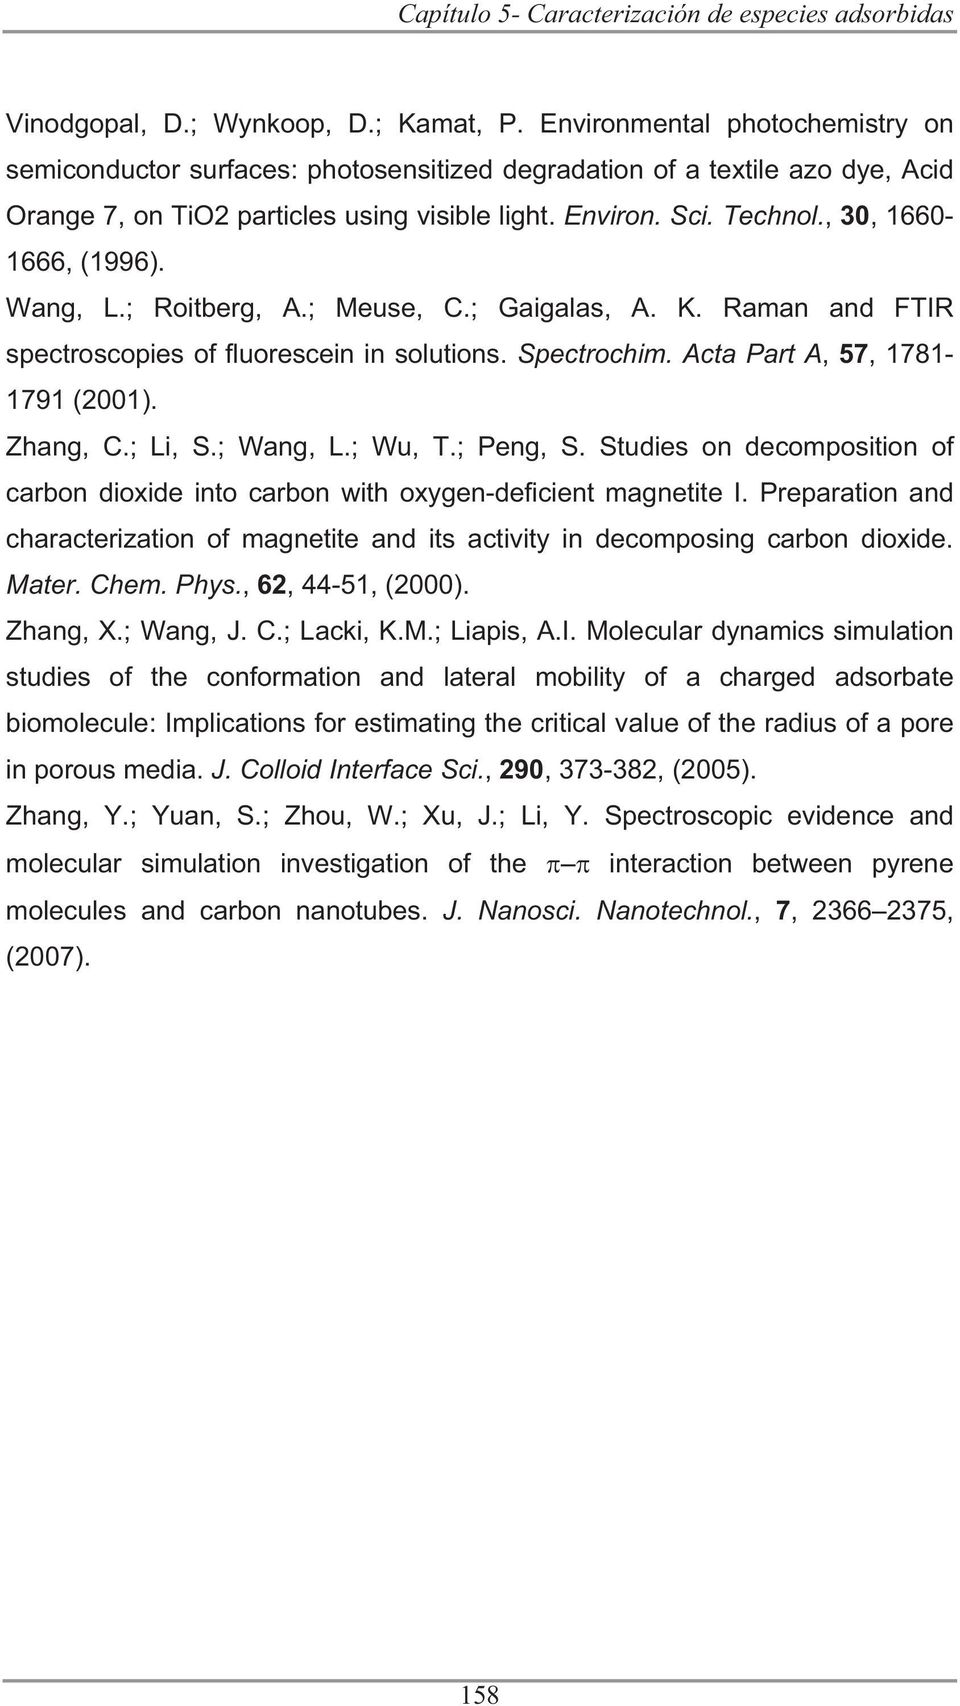 , 30, 1660-1666, (1996). Wang, L.; Roitberg, A.; Meuse, C.; Gaigalas, A. K. Raman and FTIR spectroscopies of fluorescein in solutions. Spectrochim. Acta Part A, 57, 1781-1791 (2001). Zhang, C.; Li, S.